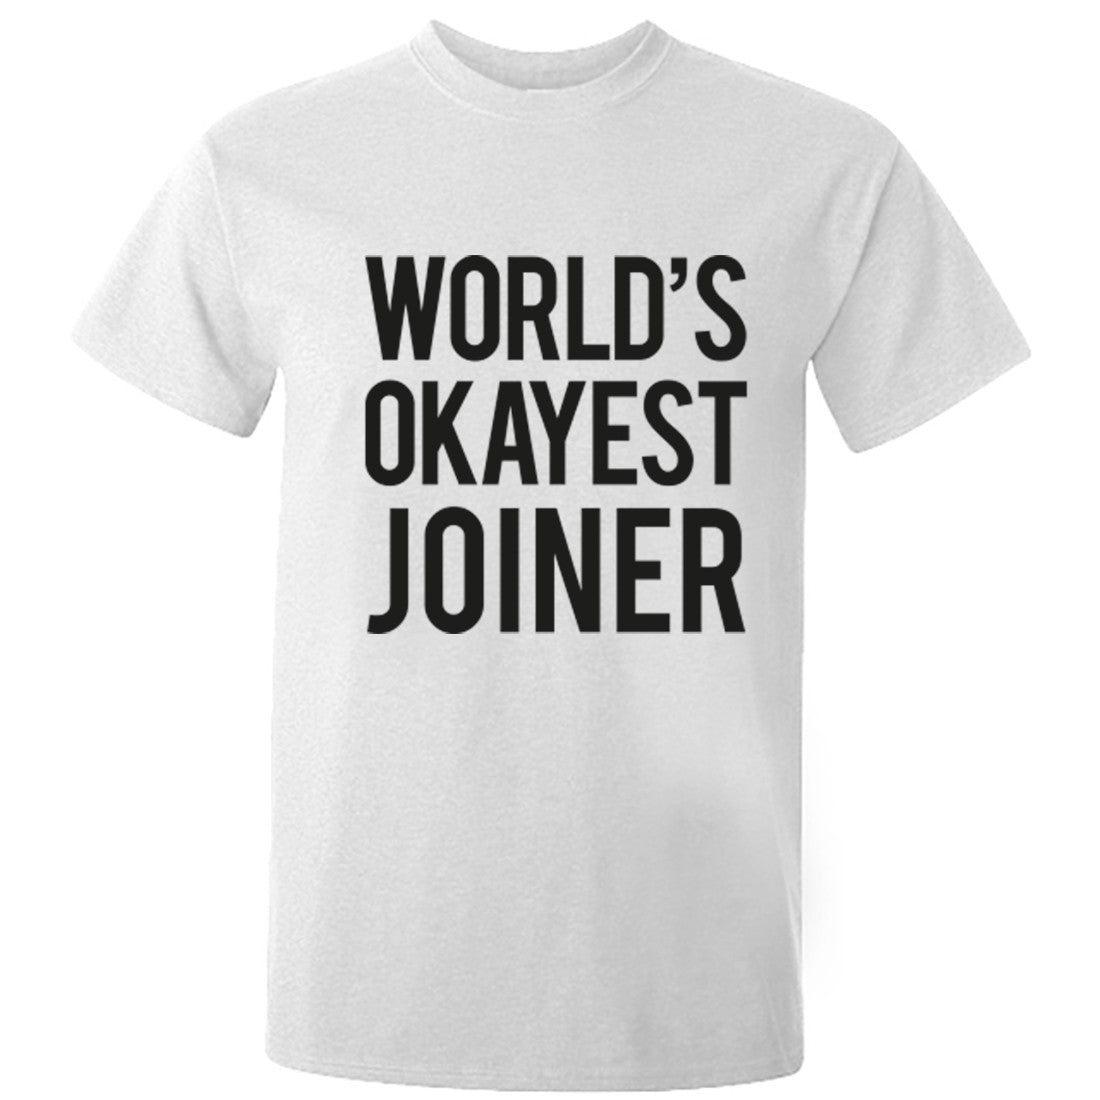 Worlds Okayest Joiner Unisex Fit T-Shirt K0505